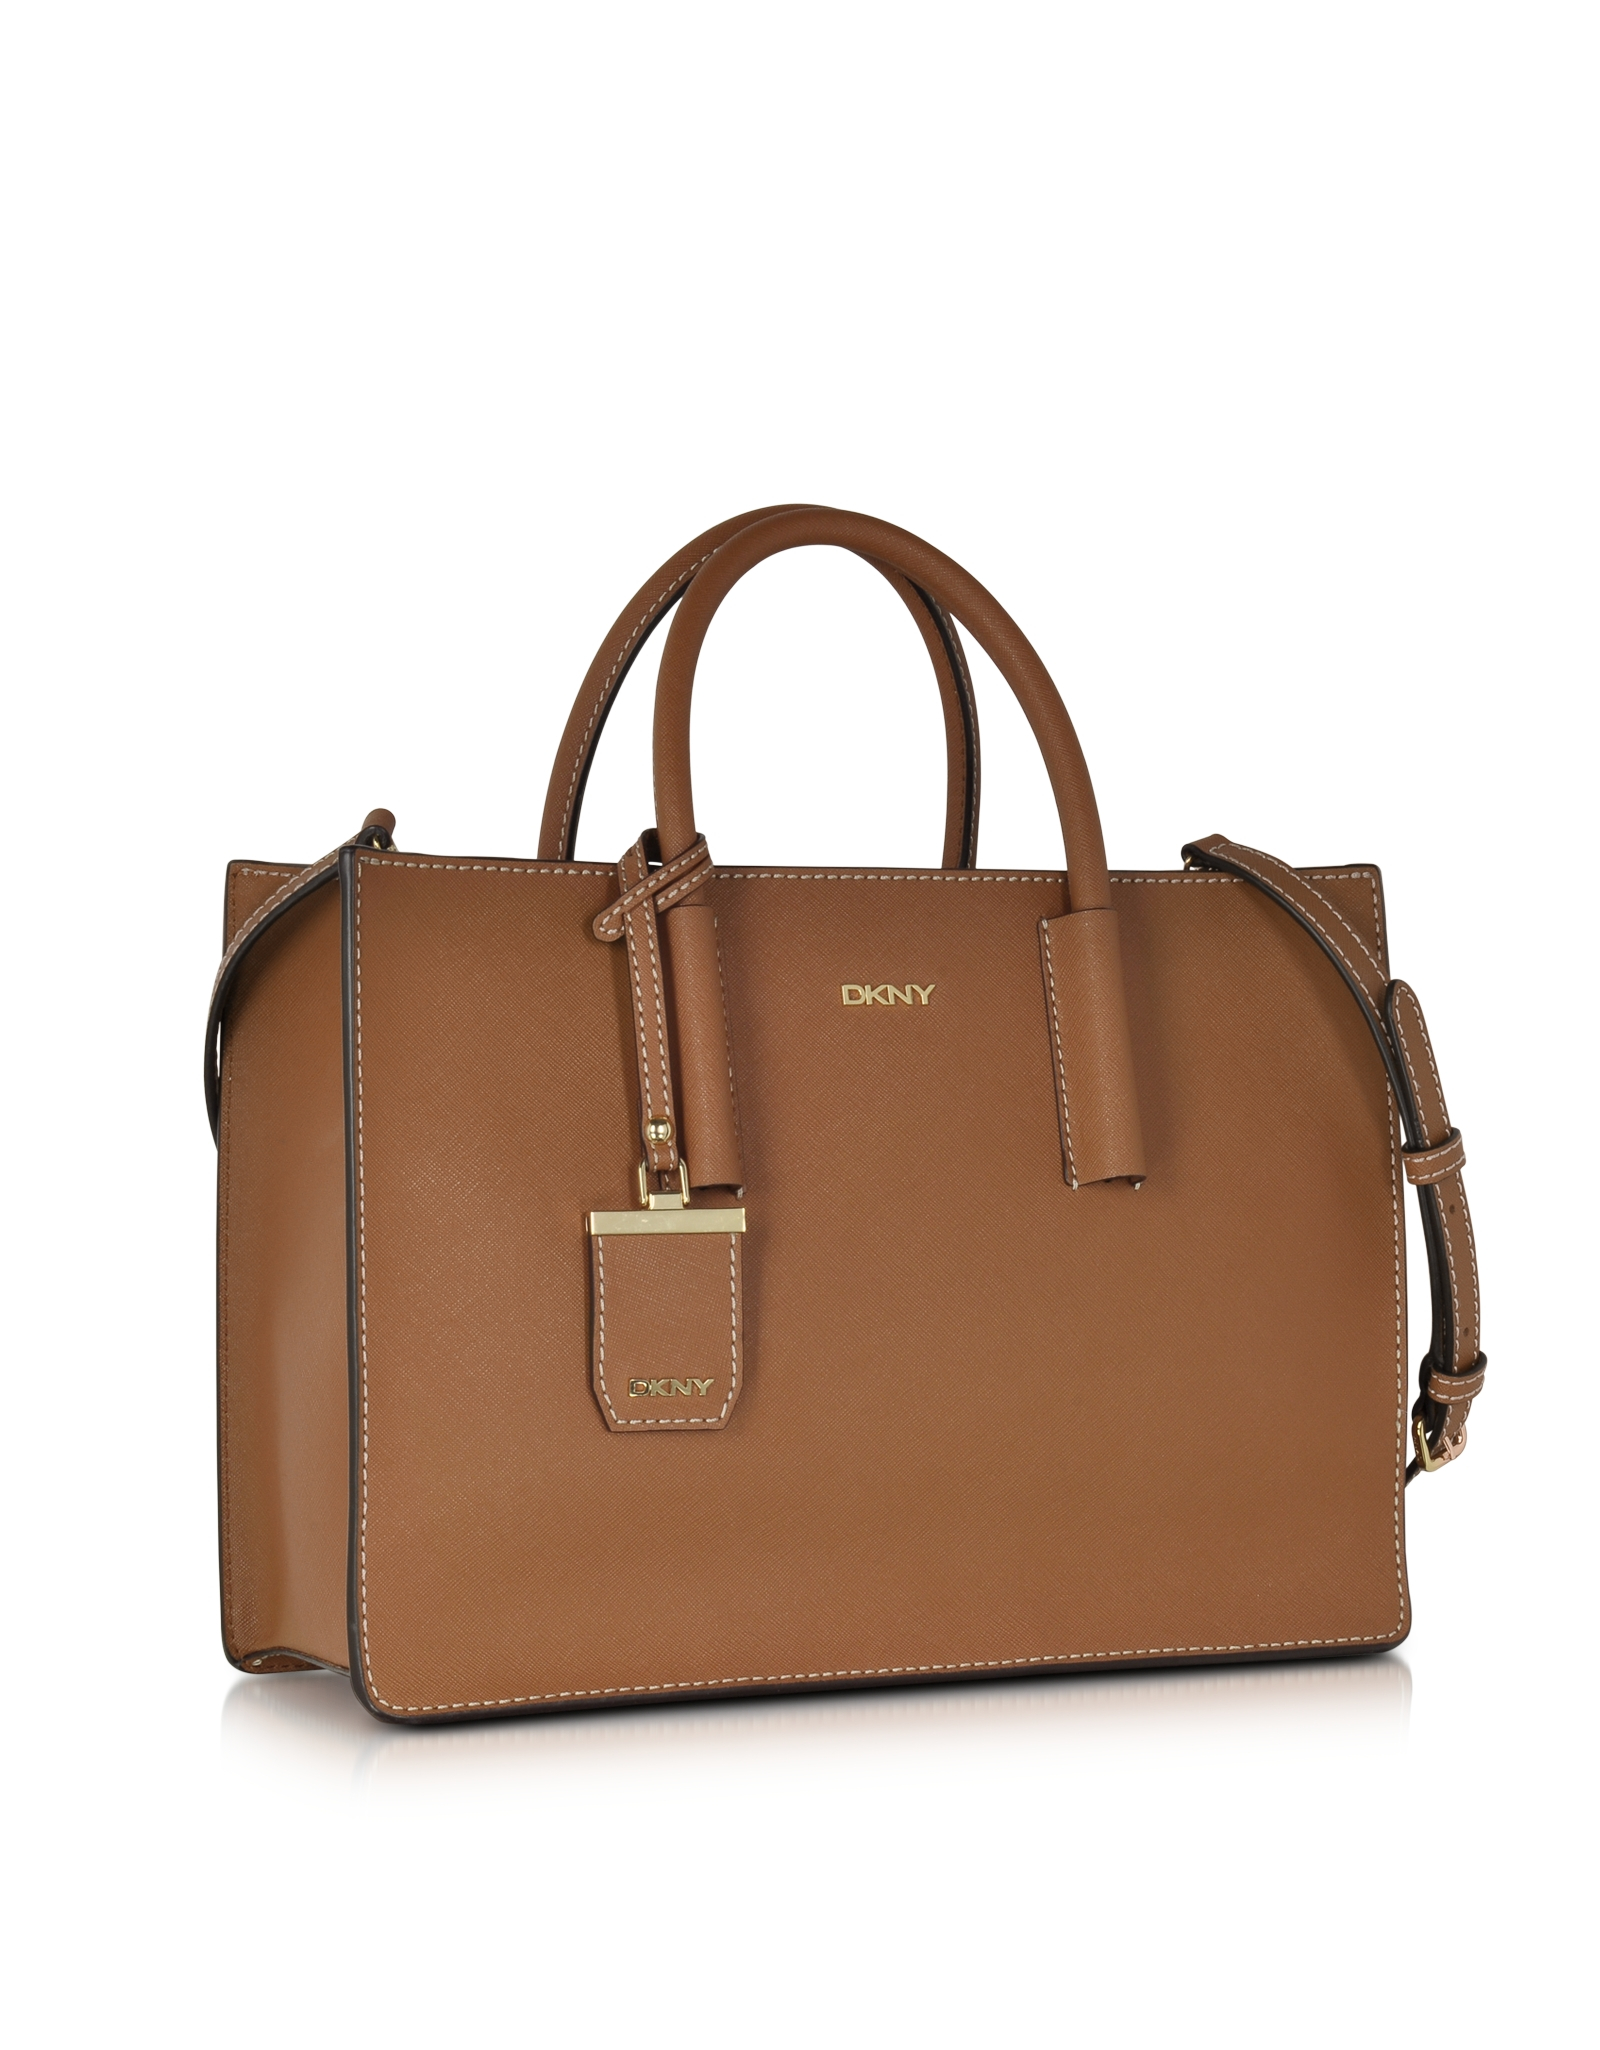 dkny bryant park saffiano leather tote bag in brown lyst